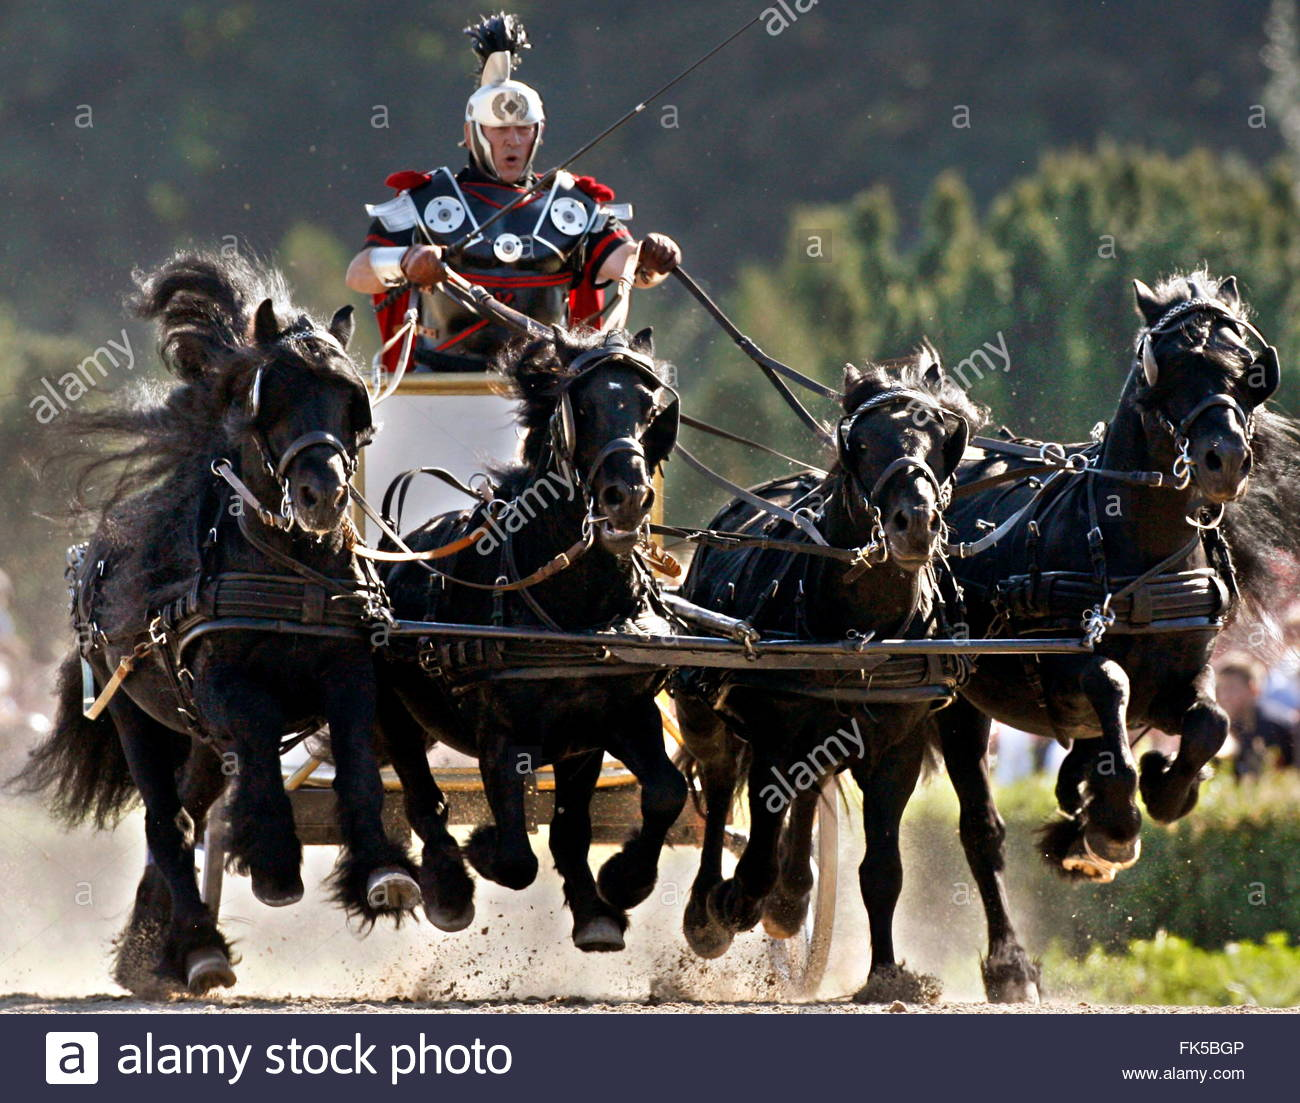 [Image: a-charioteer-spurs-his-quadriga-during-t...FK5BGP.jpg]